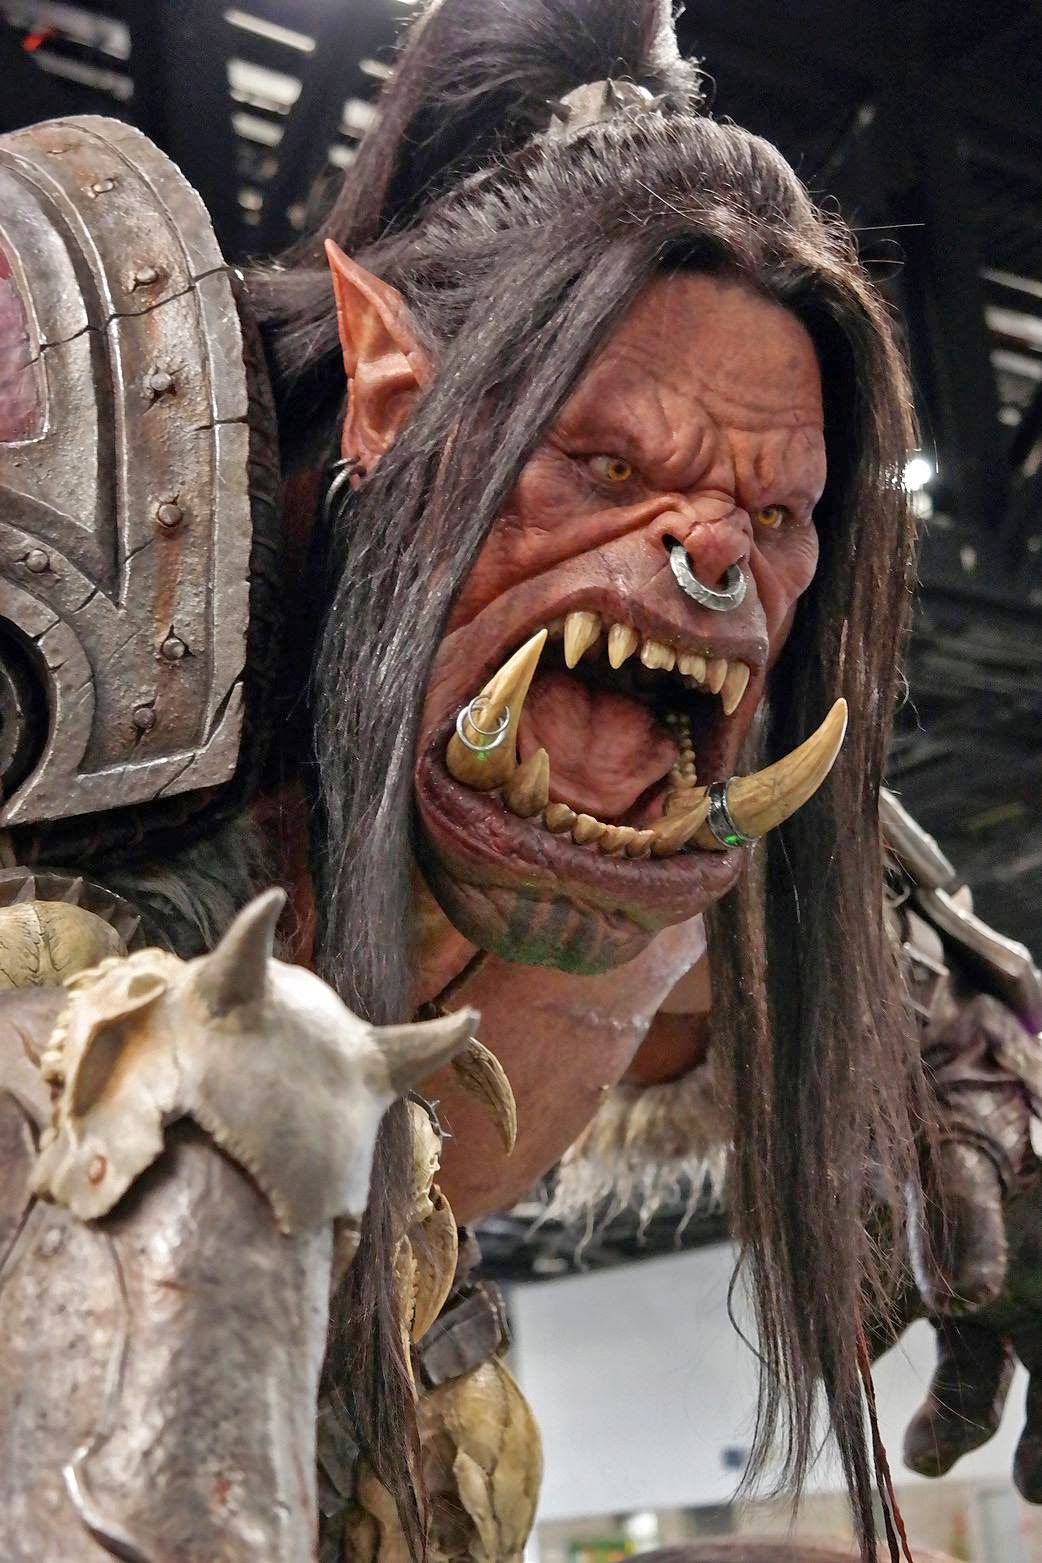 Grommash Hellscream della Alliance Studio